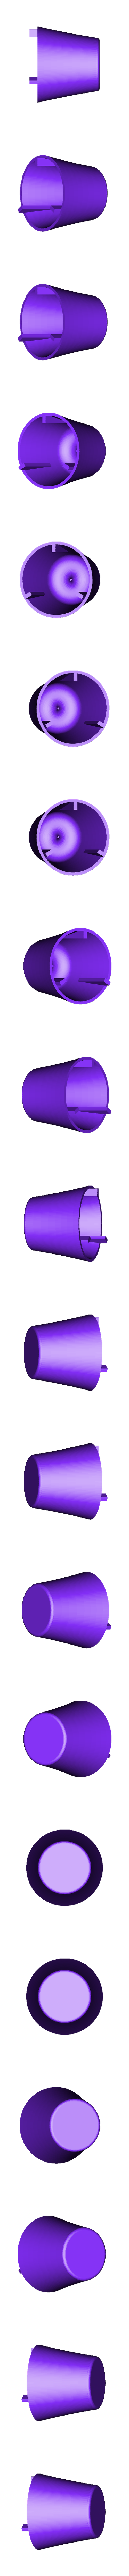 Horn_reentrant_small_inner.stl Download free STL file MP3 Bike Horn • 3D printable object, mschiller